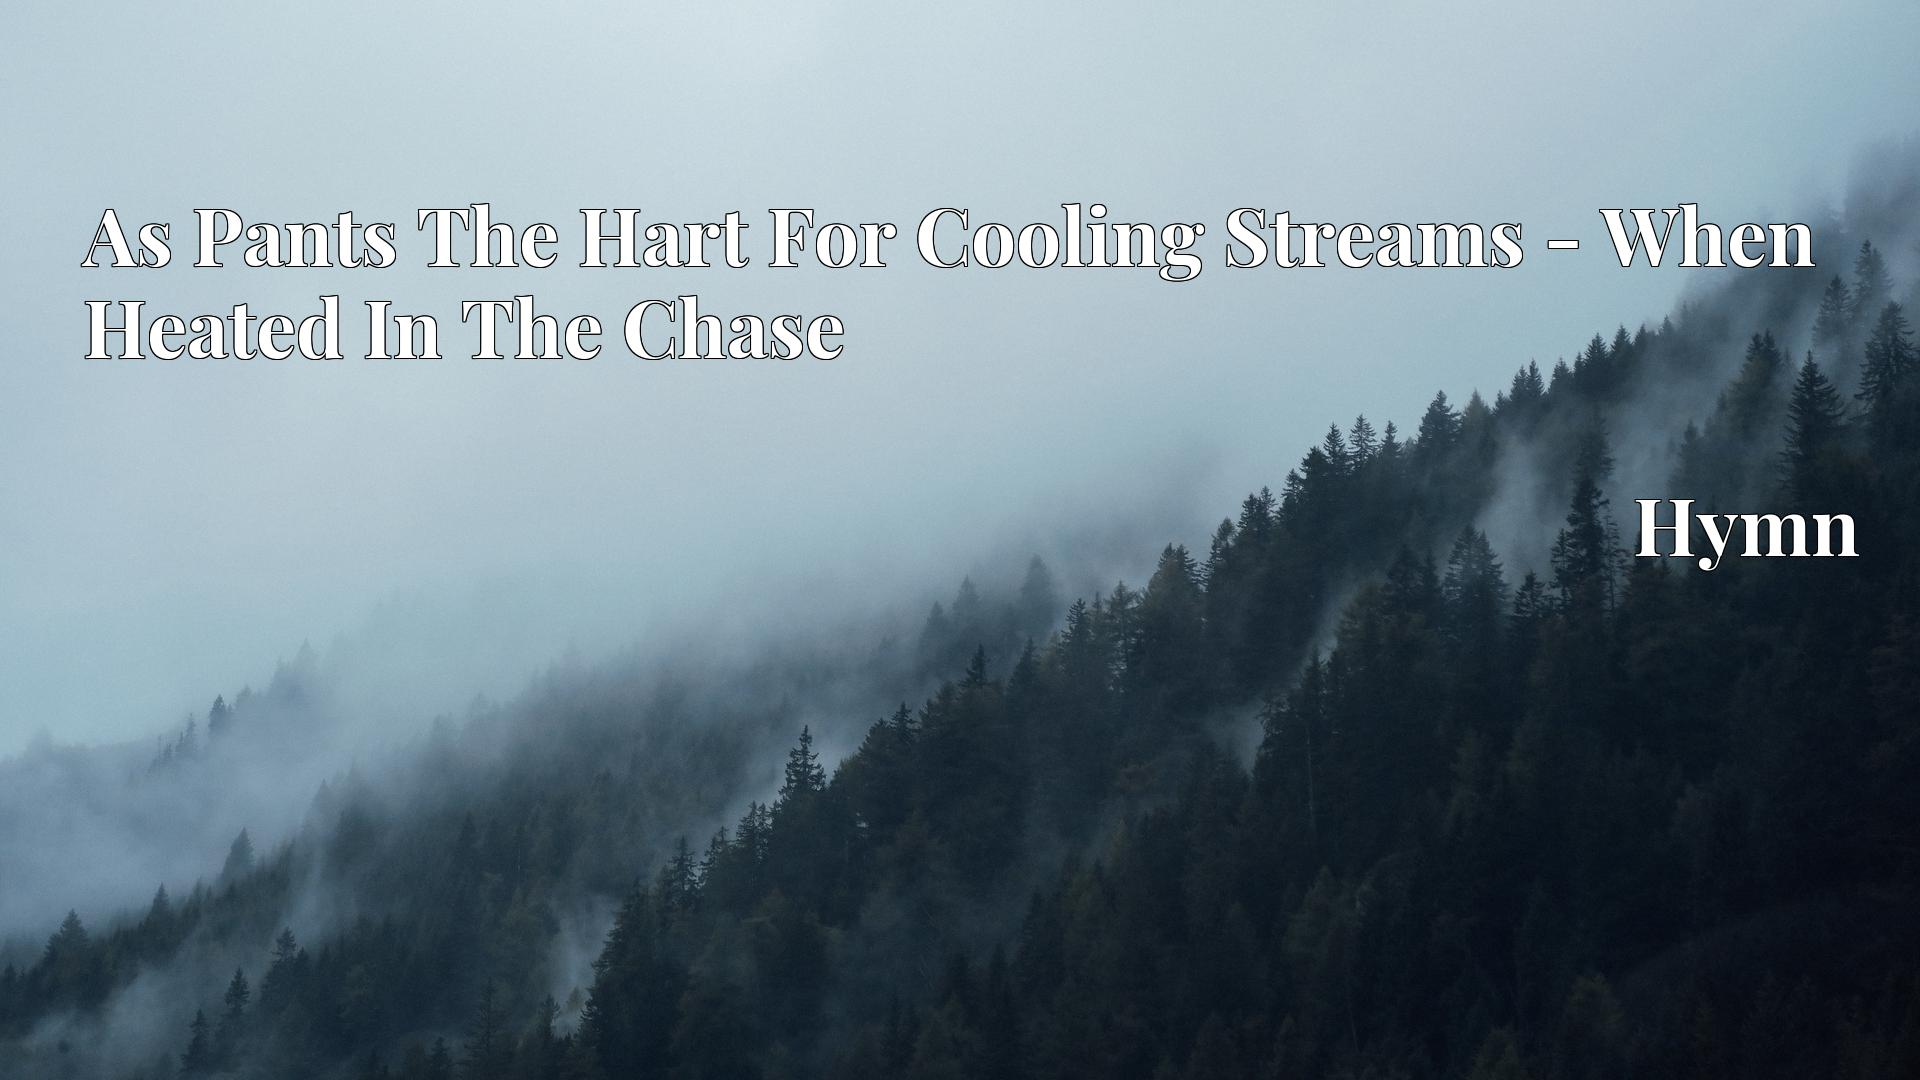 As Pants The Hart For Cooling Streams - When Heated In The Chase - Hymn